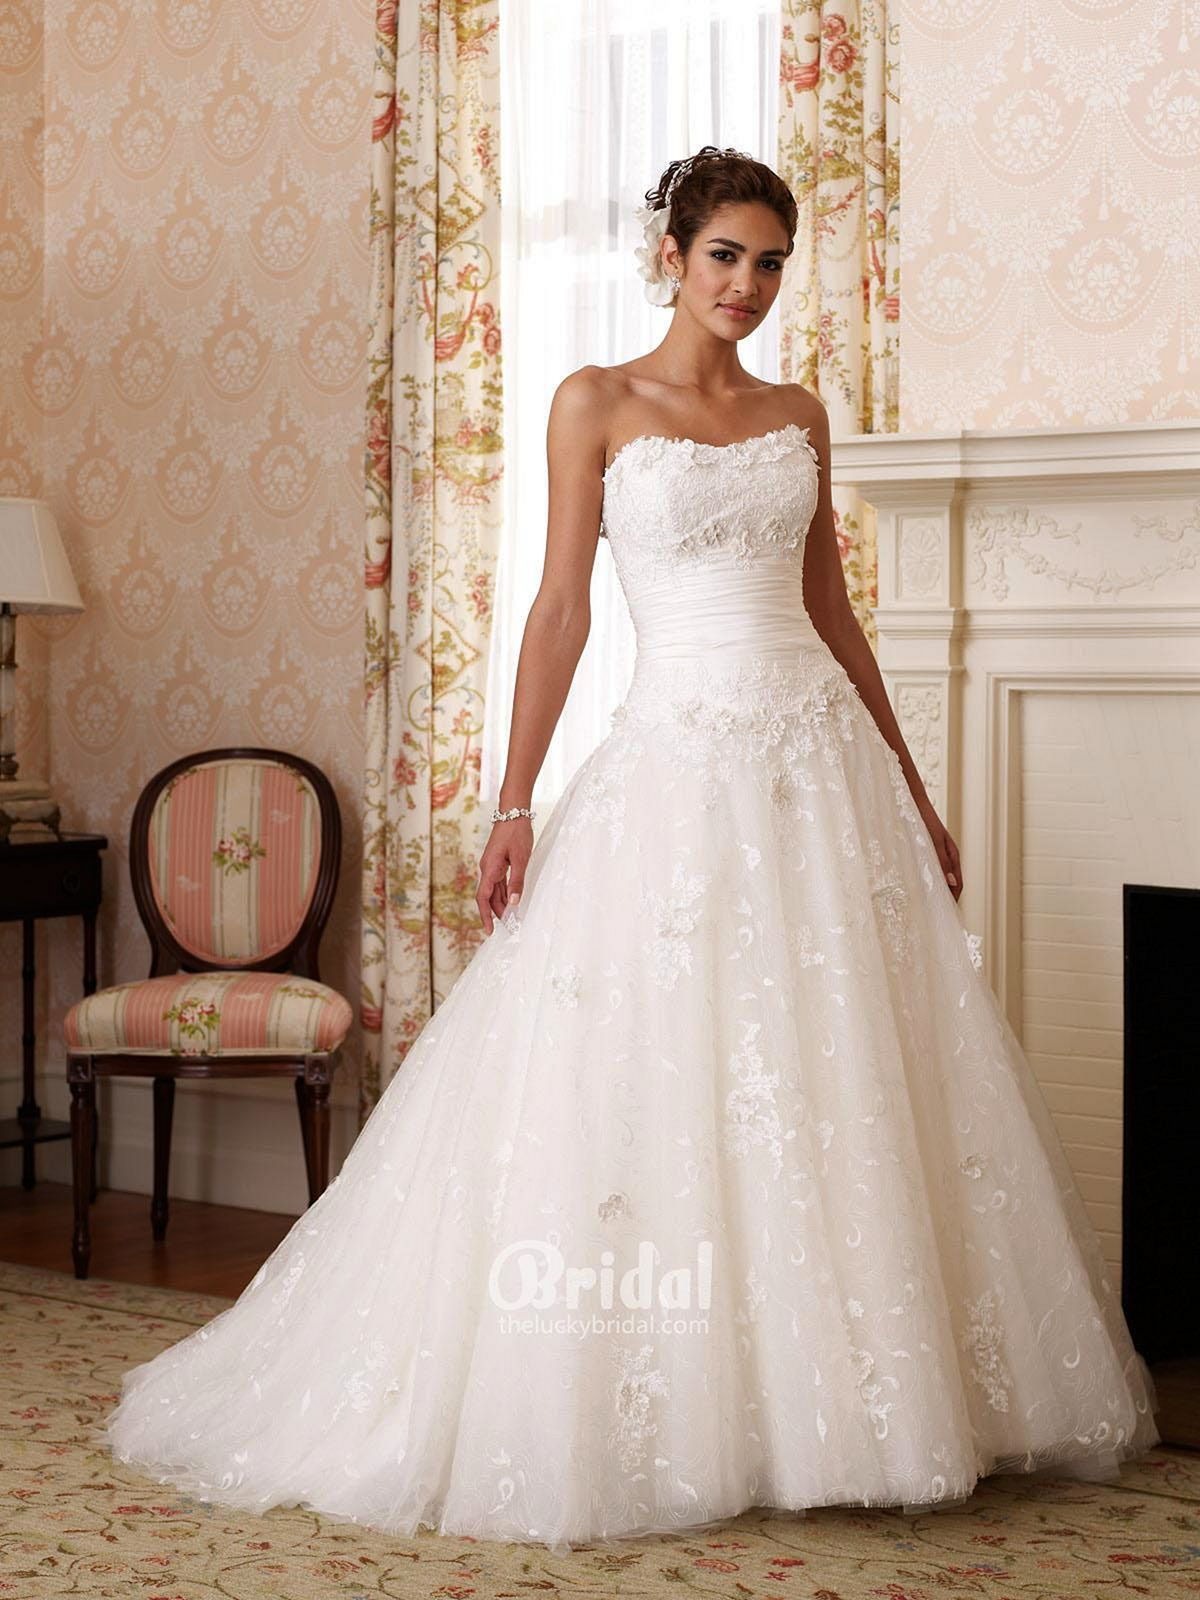 Gown dress for wedding party   Most Beautiful Strapless Wedding Dresses Ideas  Strapless